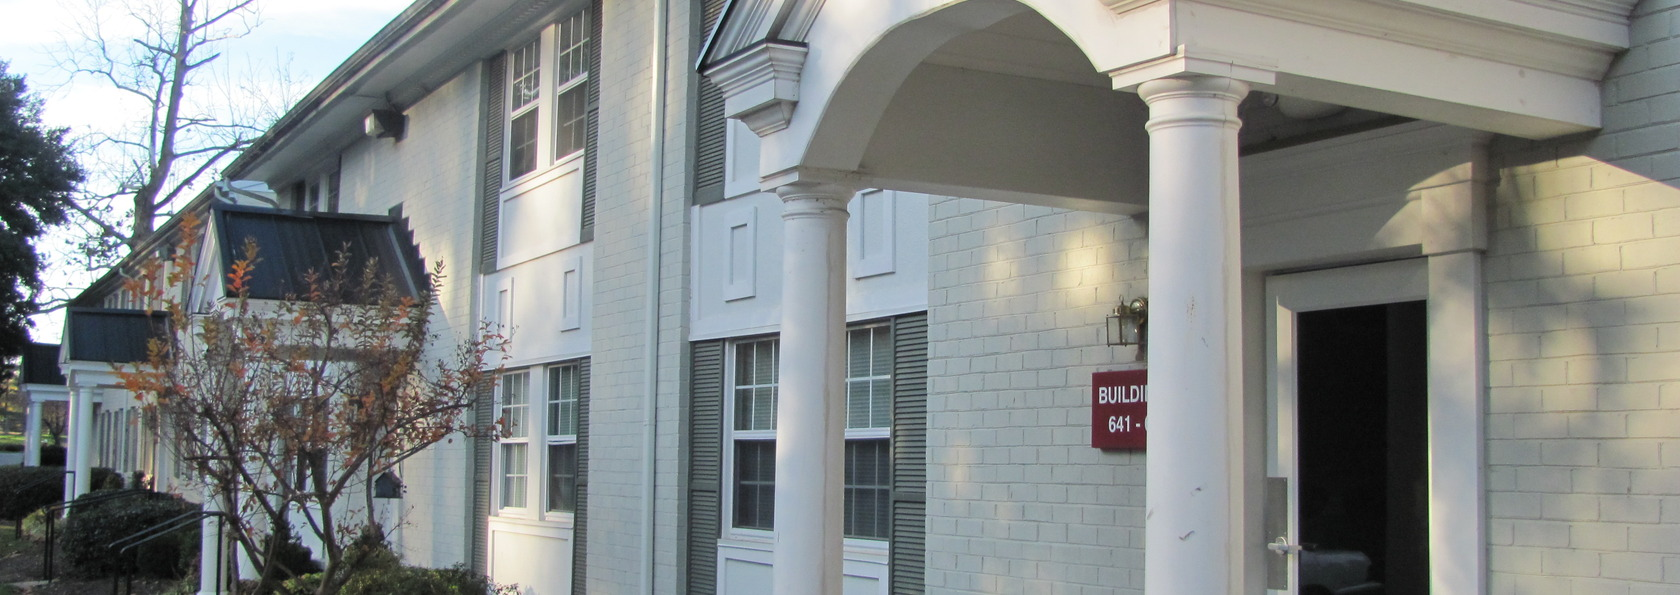 Welcome to Quarterpath Place Apartments in Williamsburg, VA!